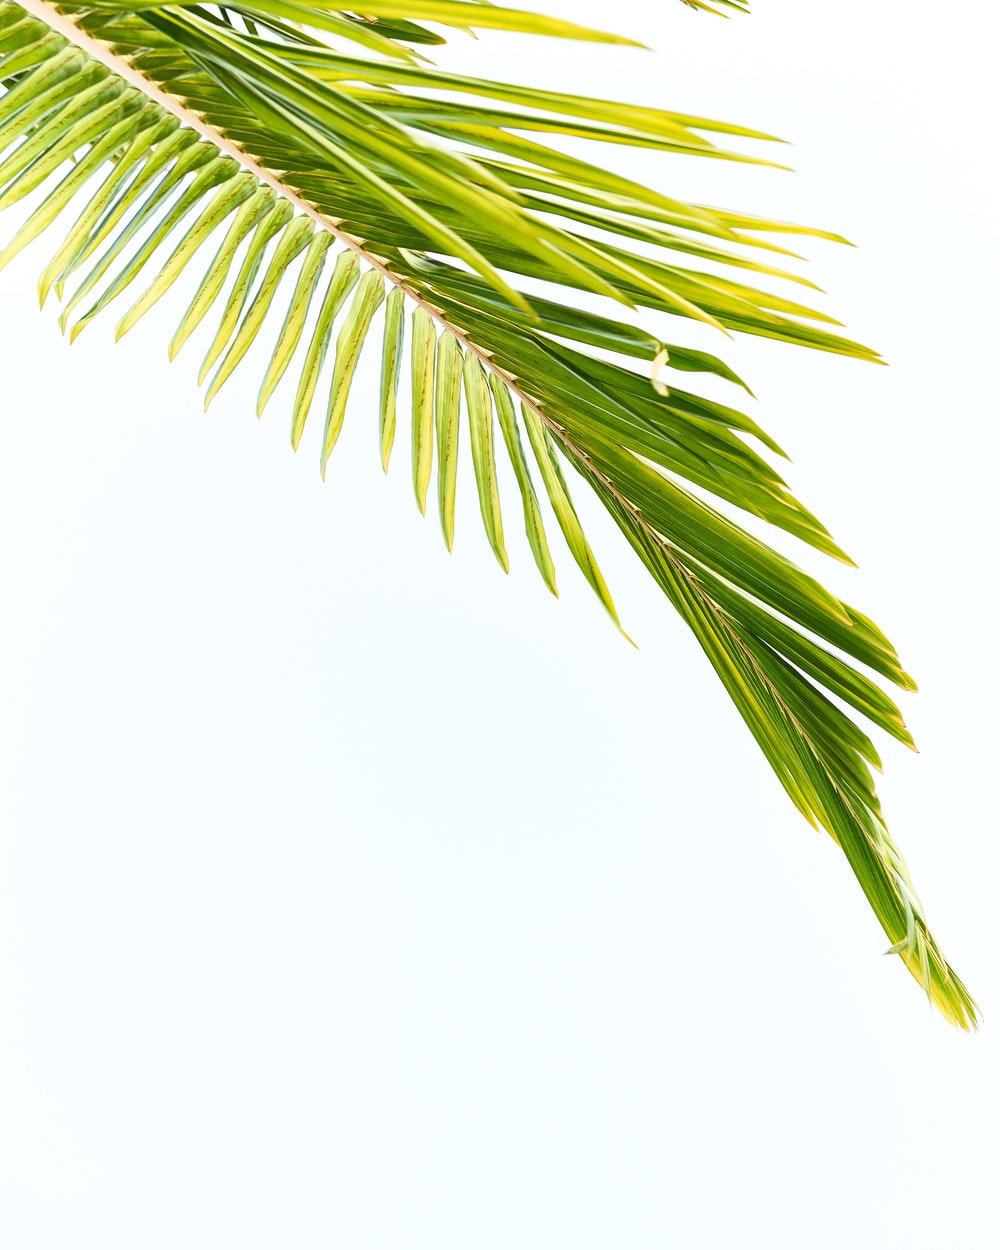 green palm tree leaf on white background